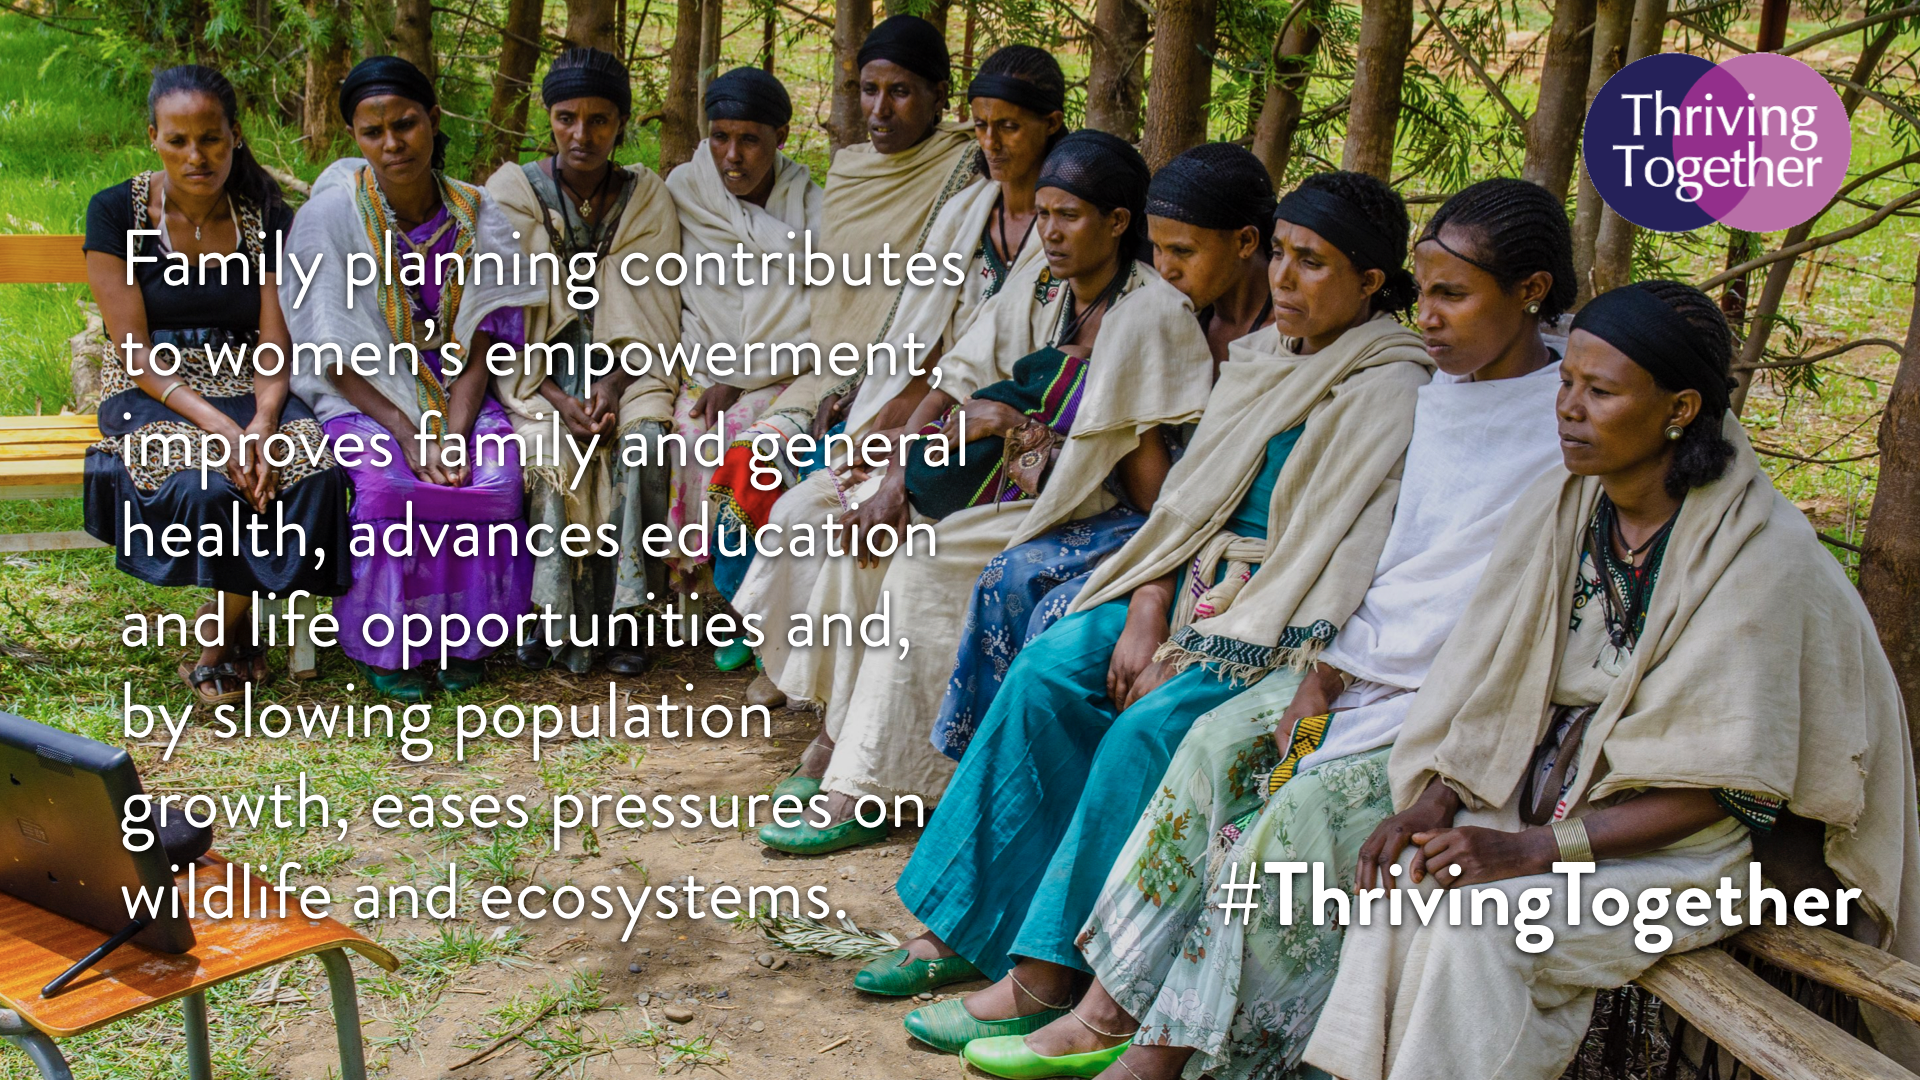 Campaign image 4 #ThrivingTogether..png